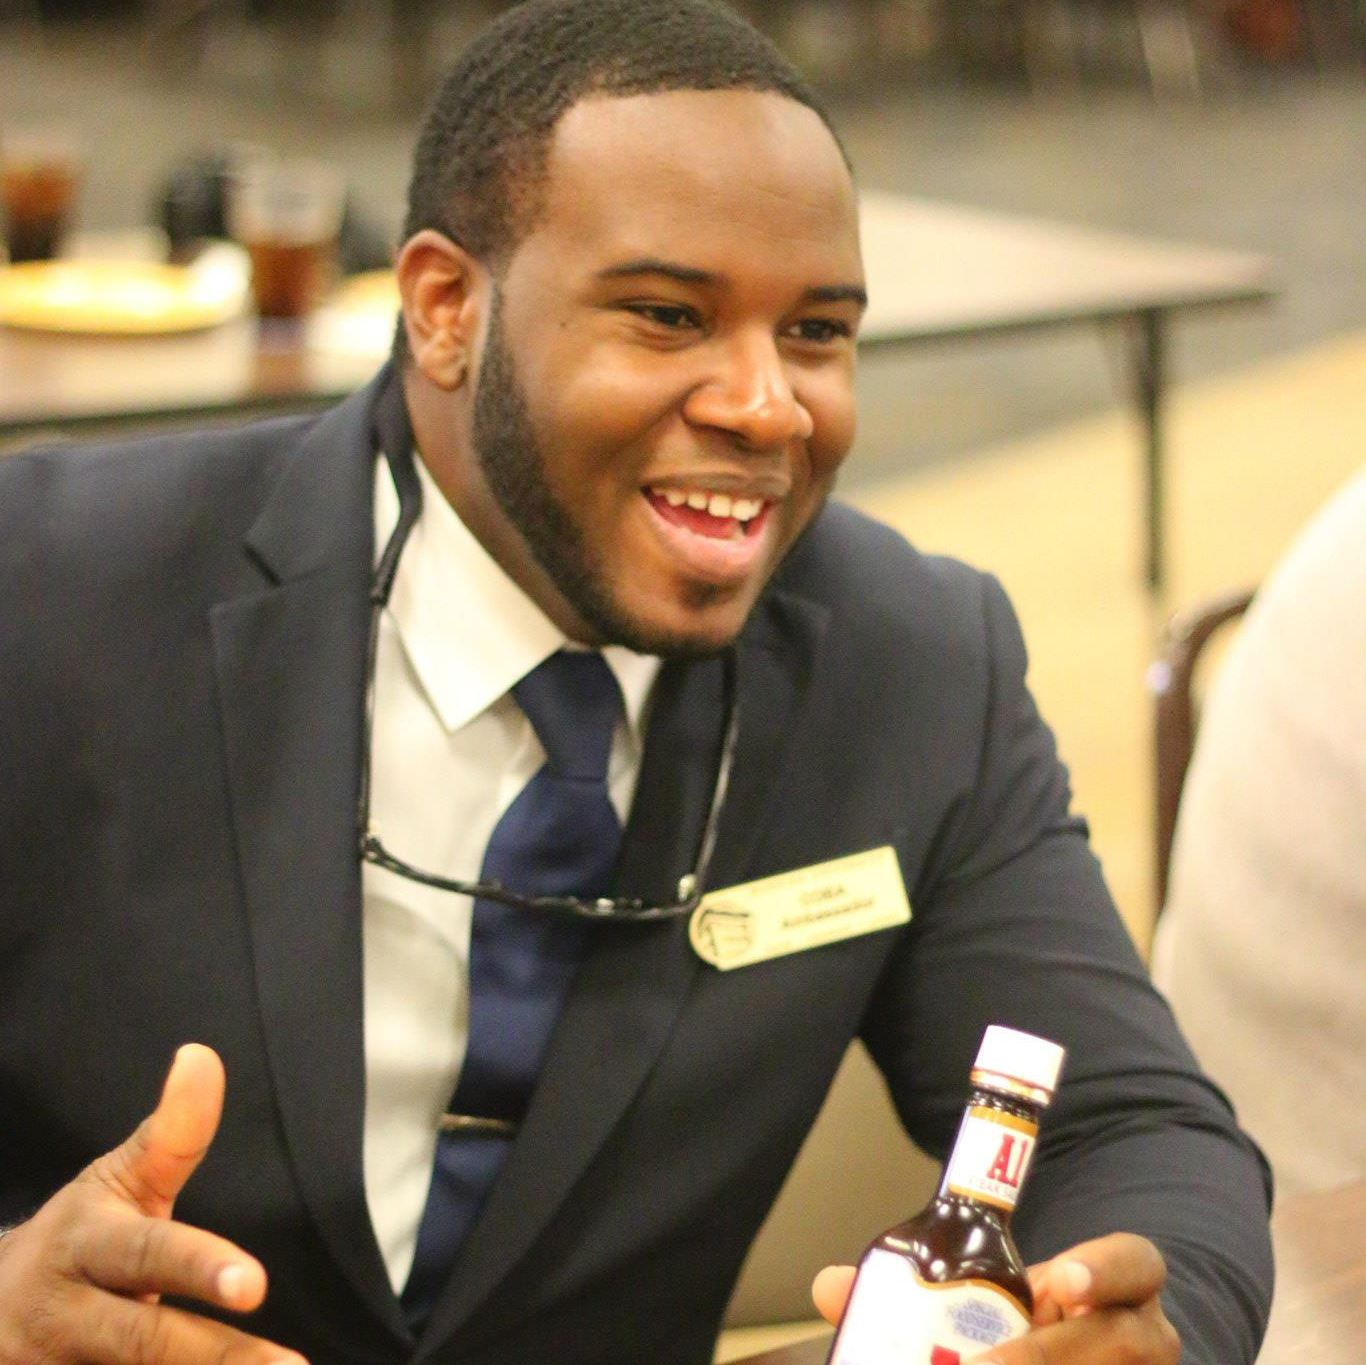 Botham Shem Jean was shot and killed by a Dallas Police Officer